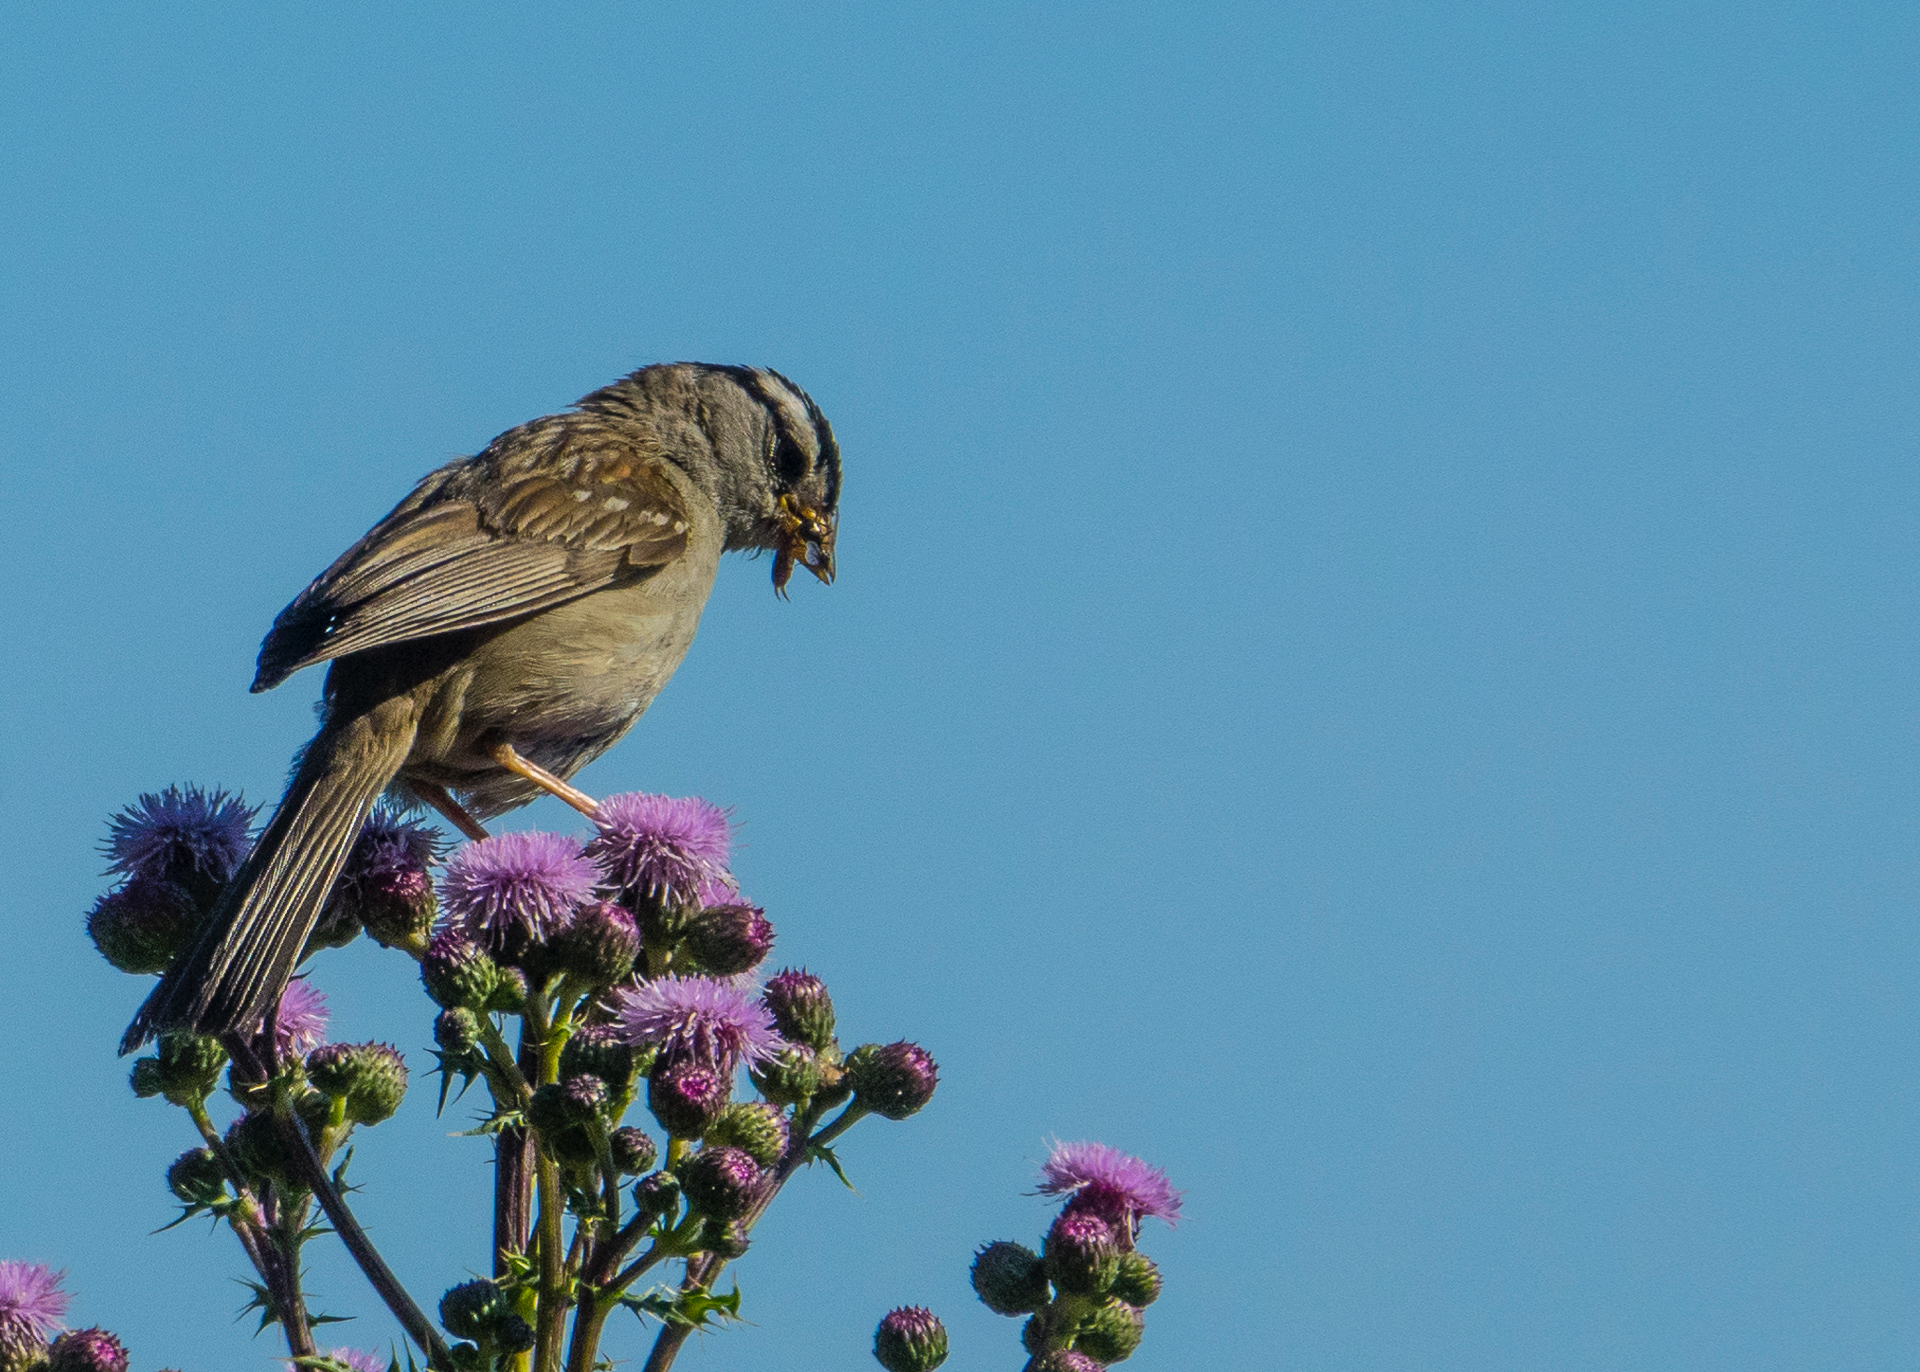 I love the sparrows eating the earwigs - damn things are everywhere!